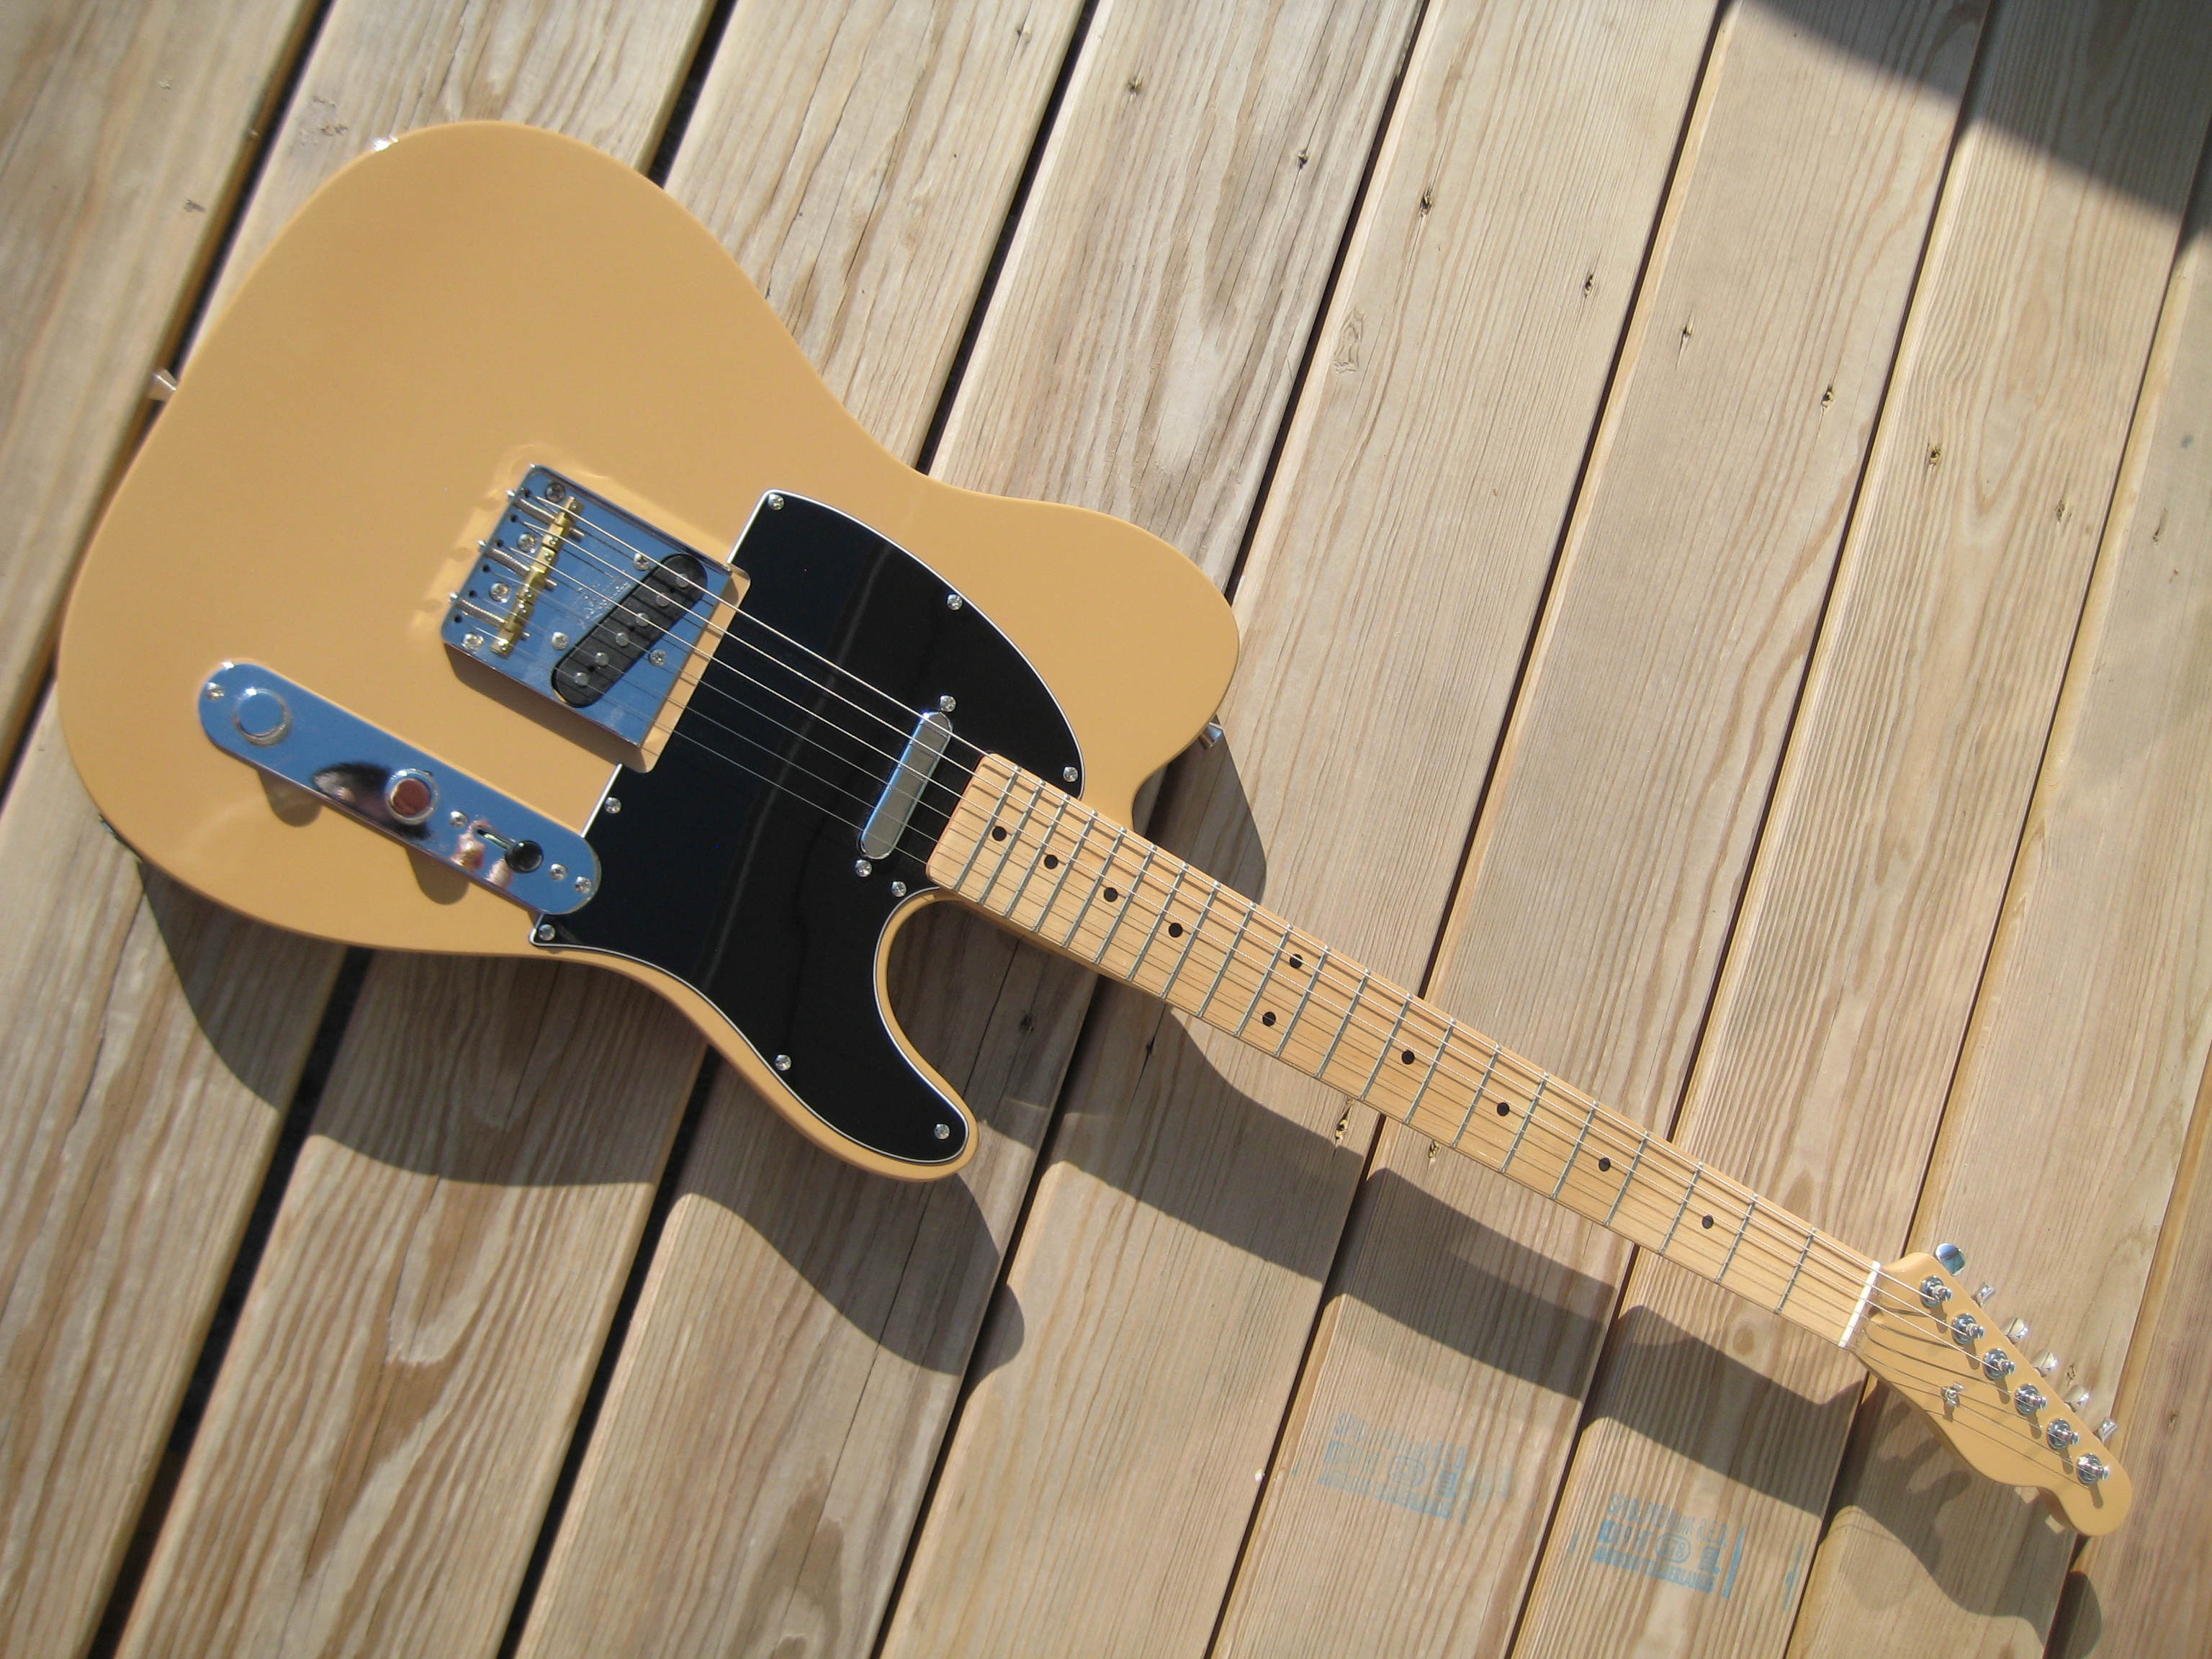 Beautiful 59 desert tan finish